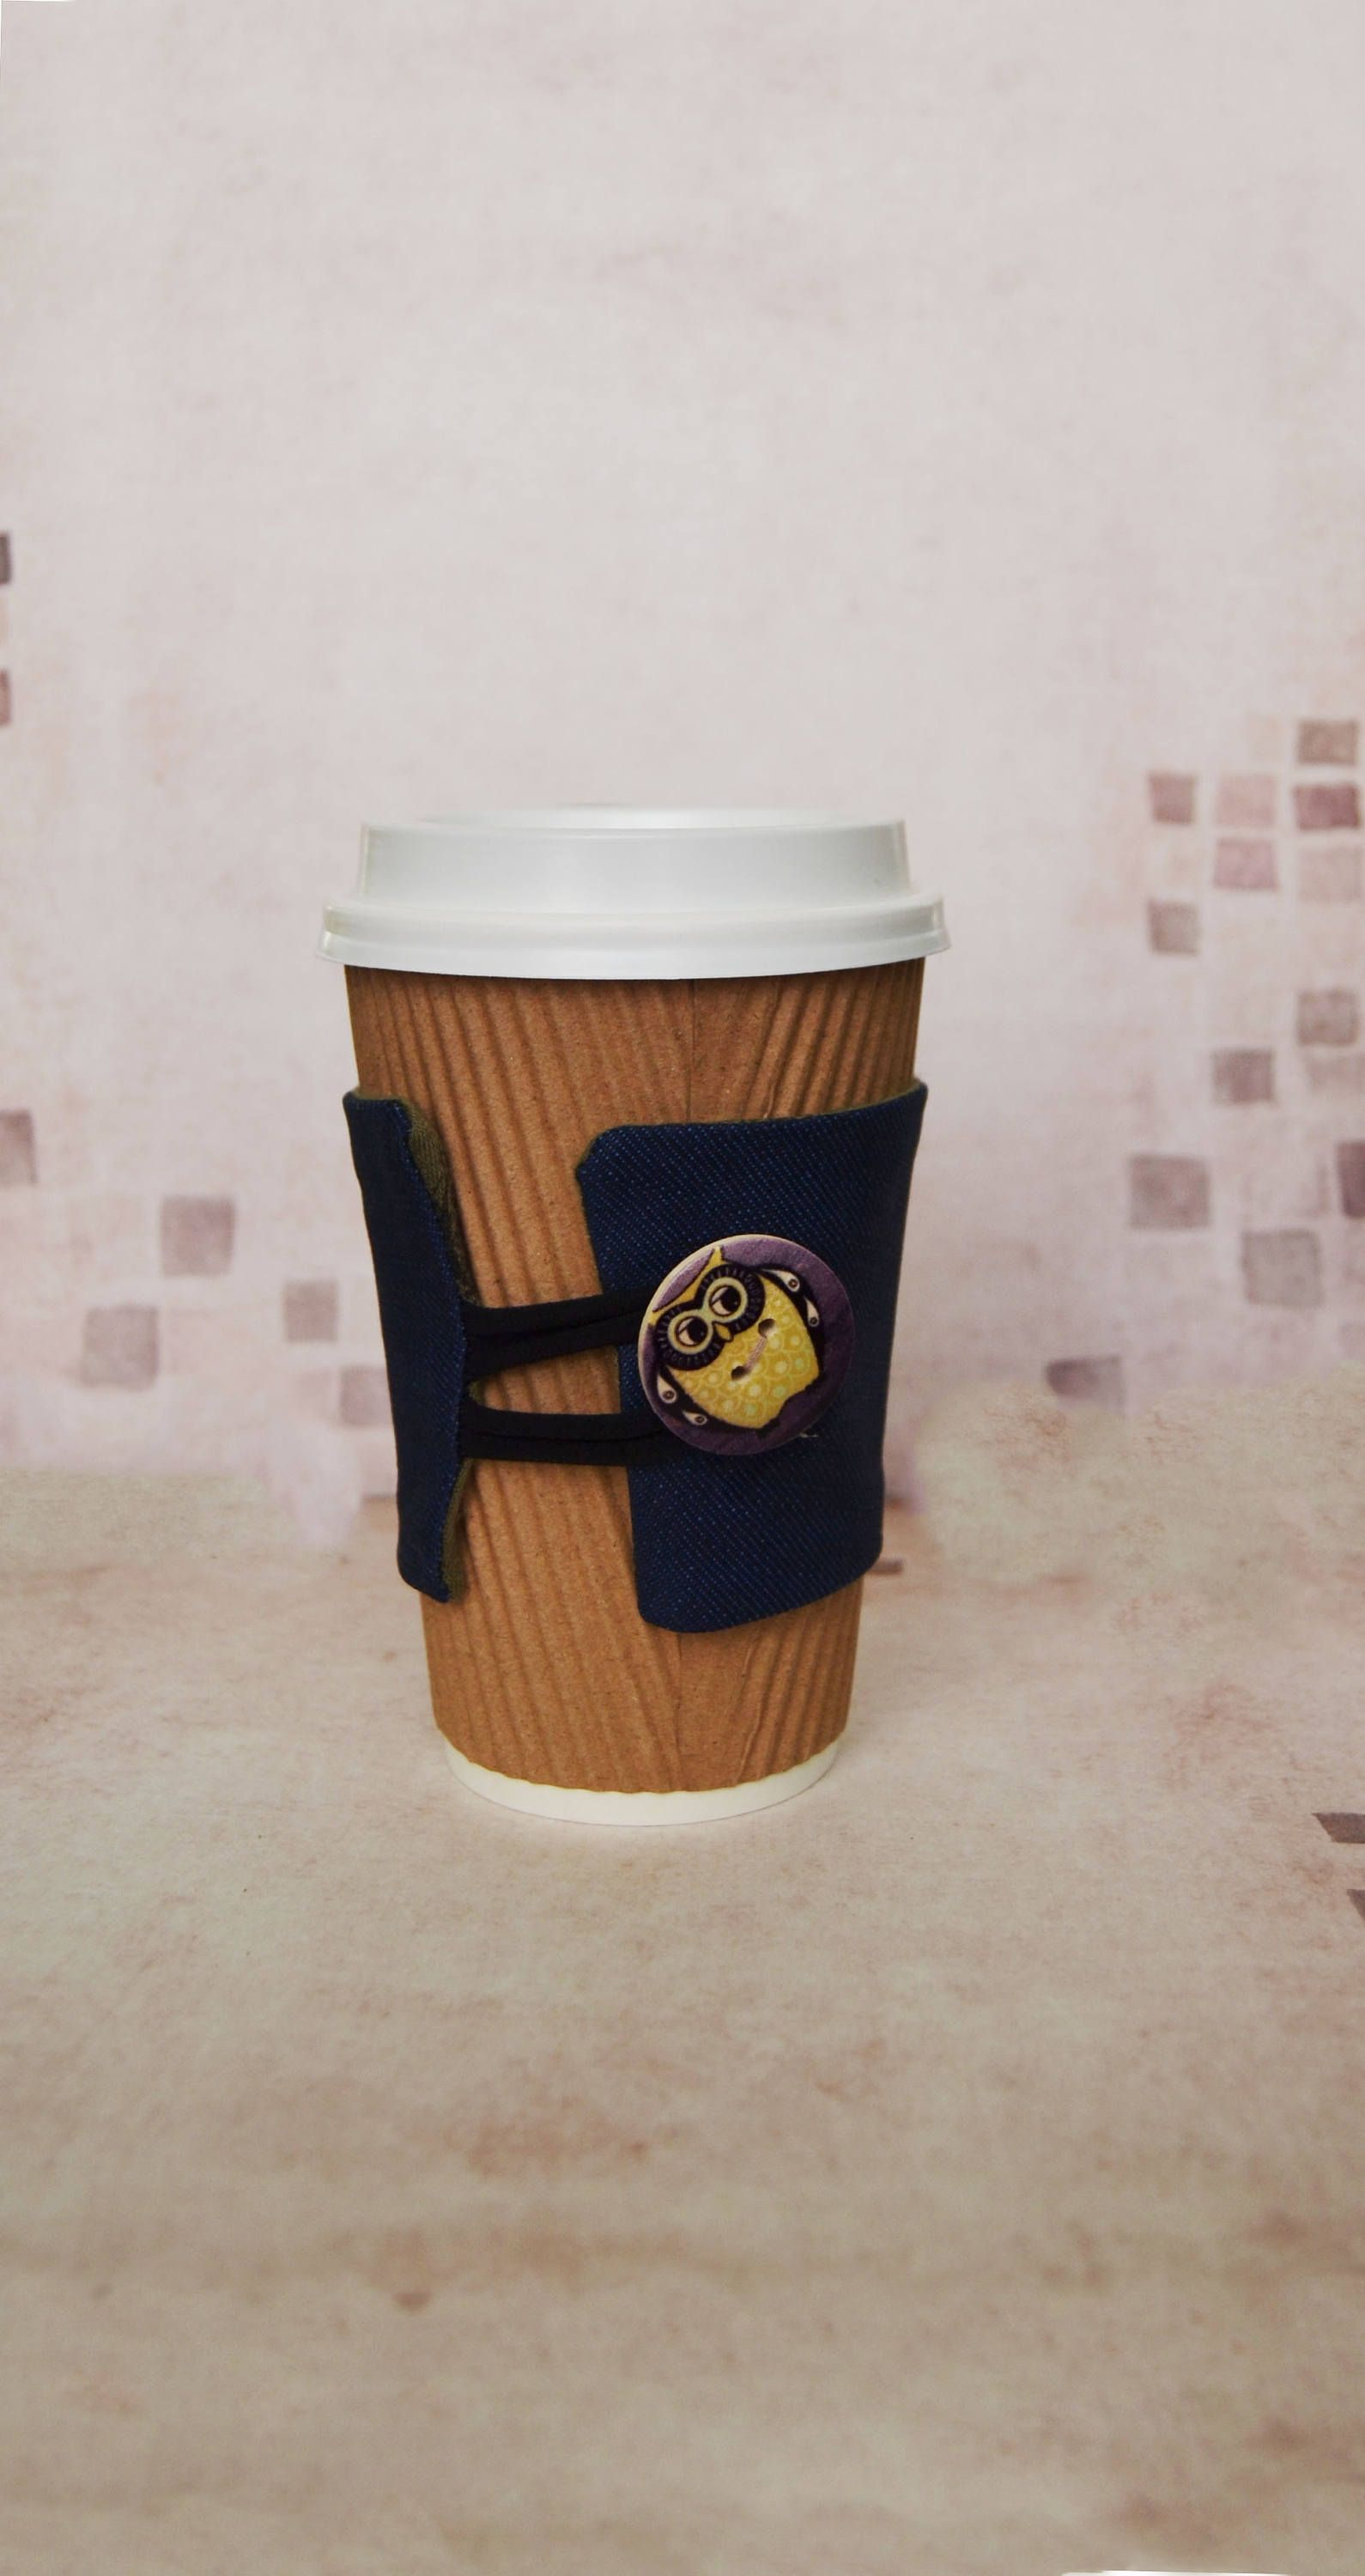 Cup Cozy, Coffee Mug Cozy, Coffee Cup Cozy, Coffee Cup